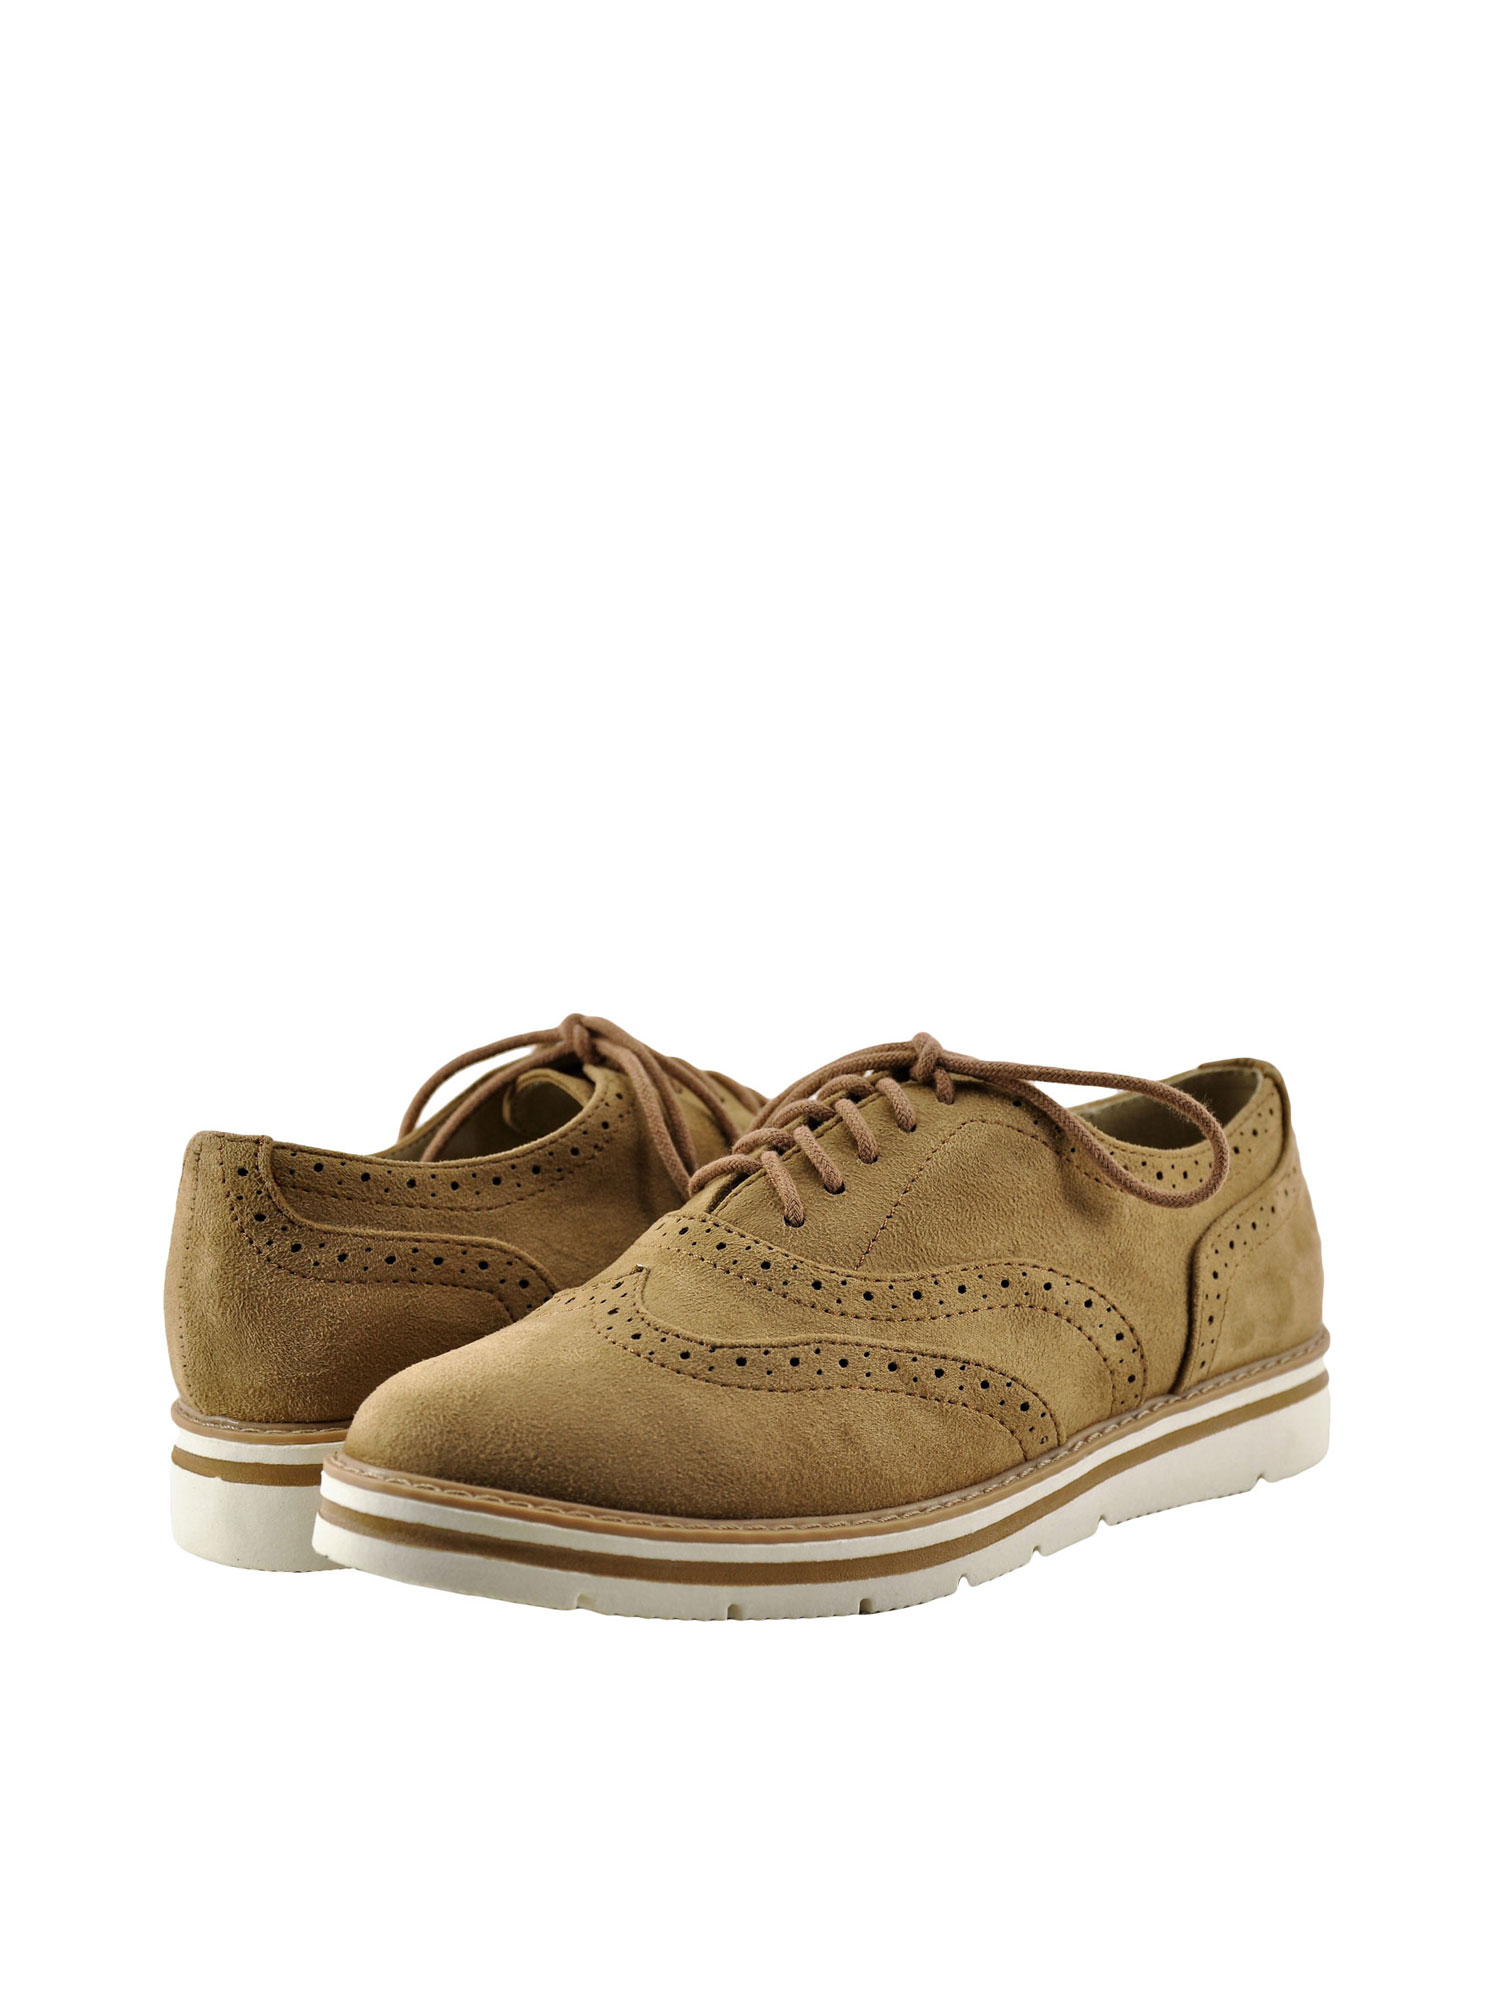 Lace Up Closed Toe Oxford - Walmart